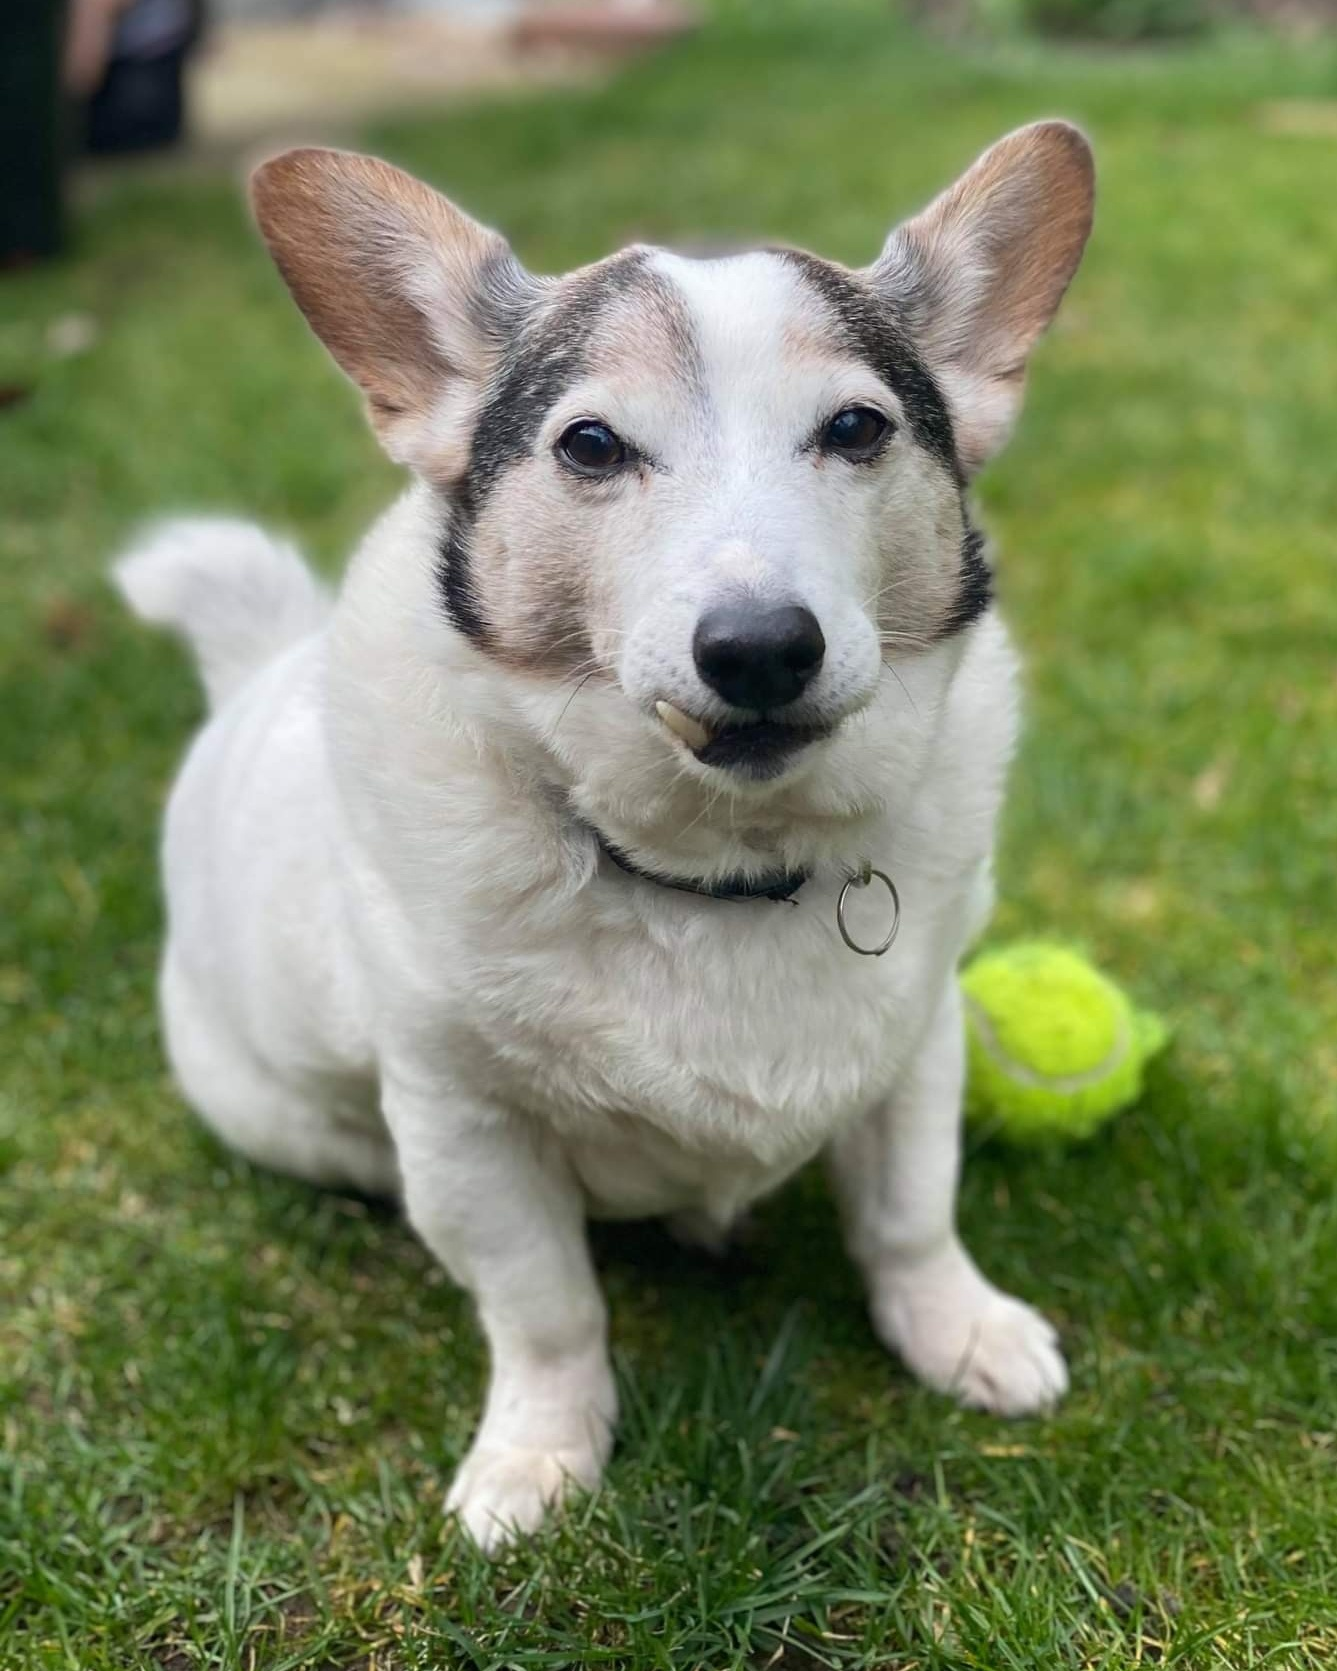 Old Jack Russell Terrier looking at the camera with his ball